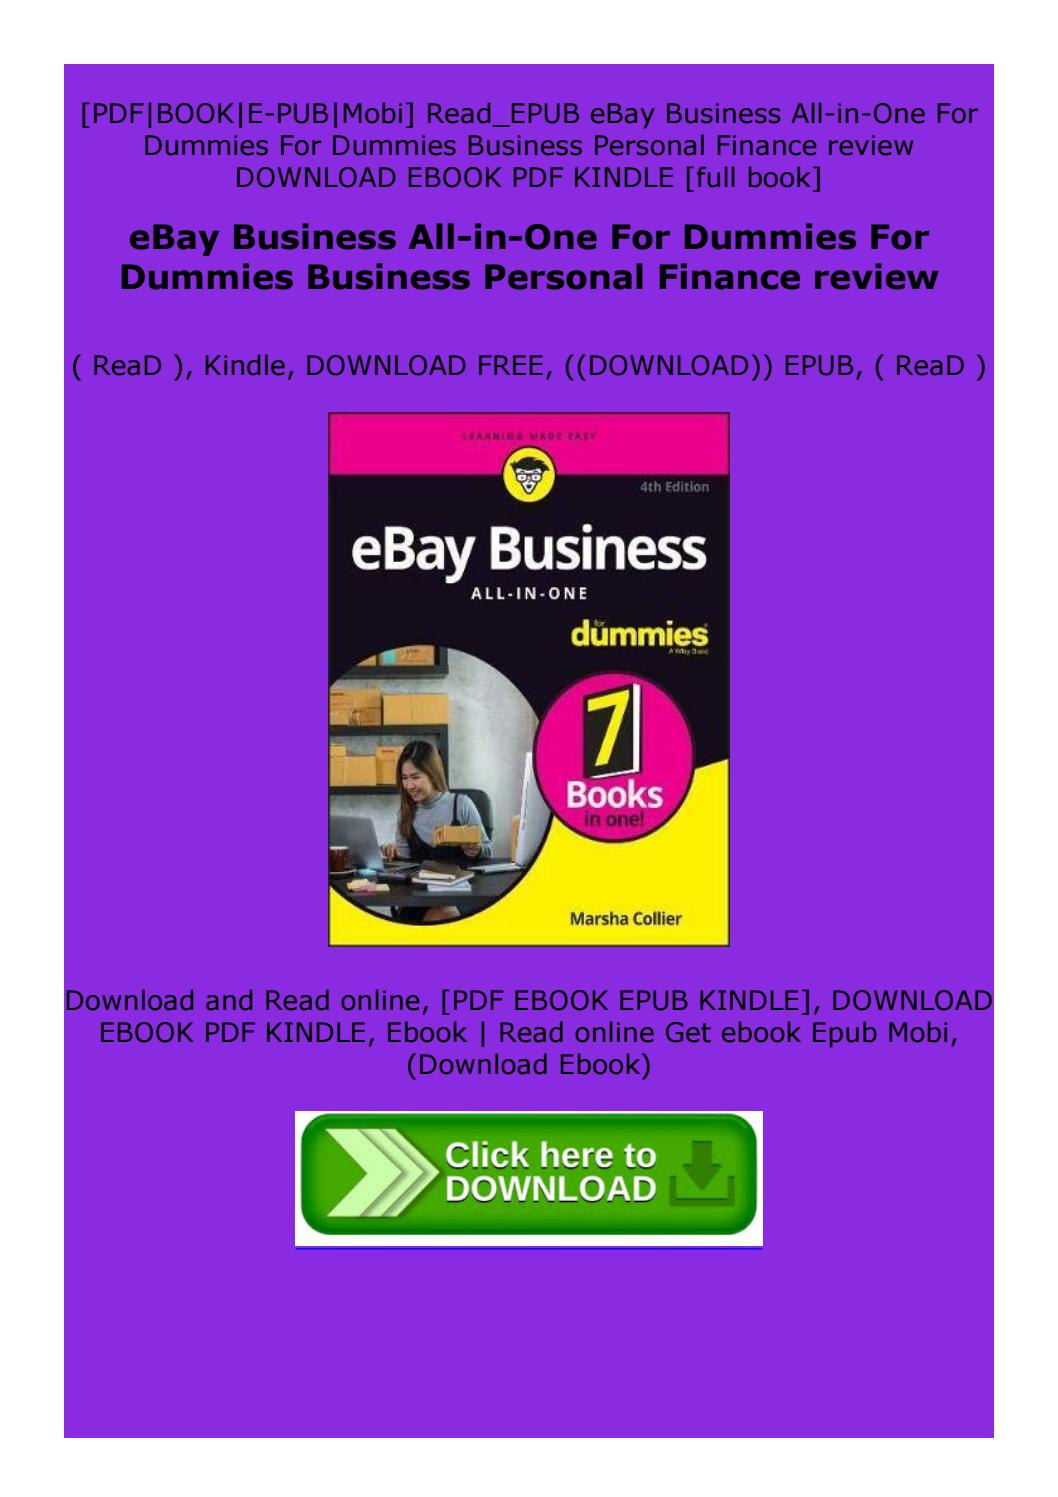 Ebay Business All In One For Dummies For Dummies Business Personal Finance Review By Zwxescdrftgh Issuu